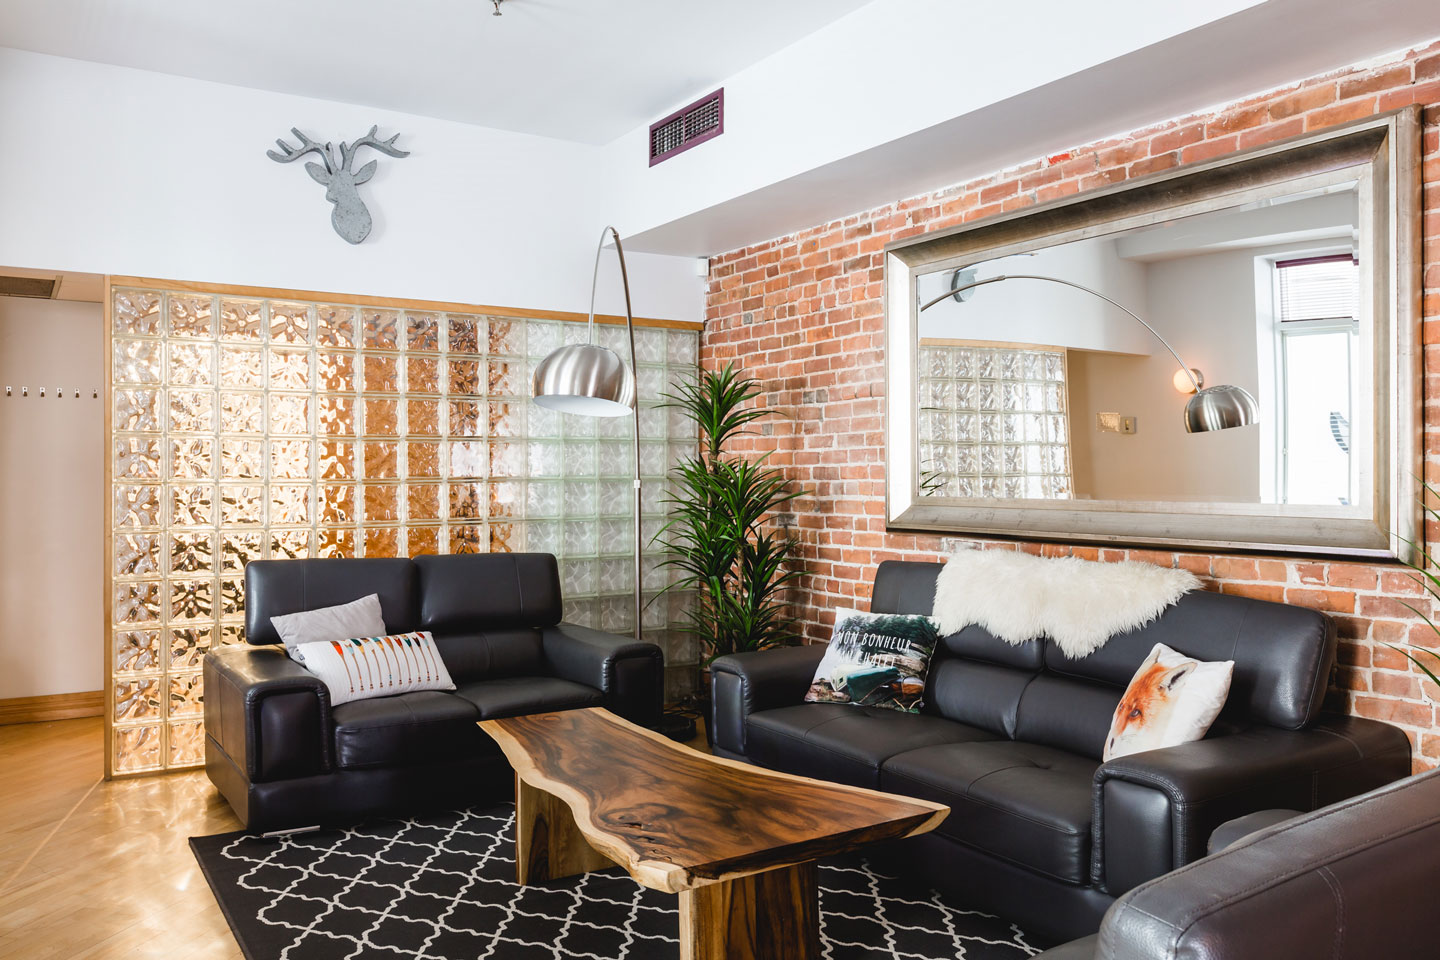 City chalet: cosy welcoming living room